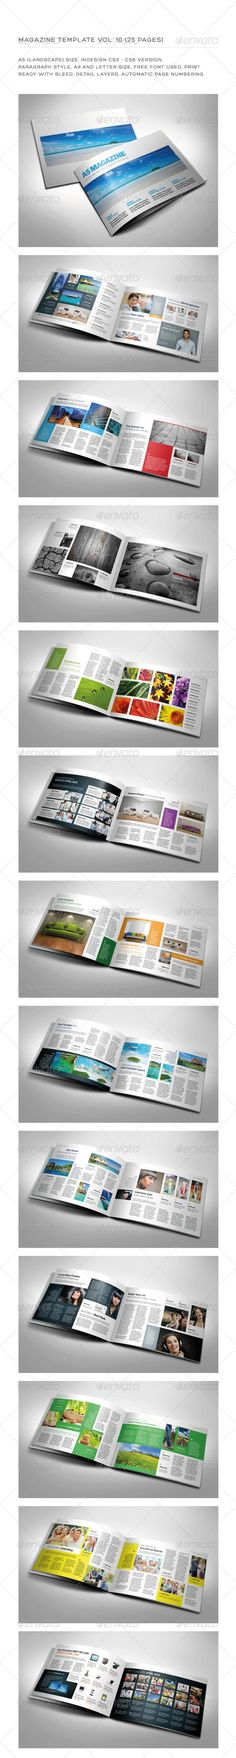 Attractive Indesign Yearbook Templates Motif - Resume Ideas ...